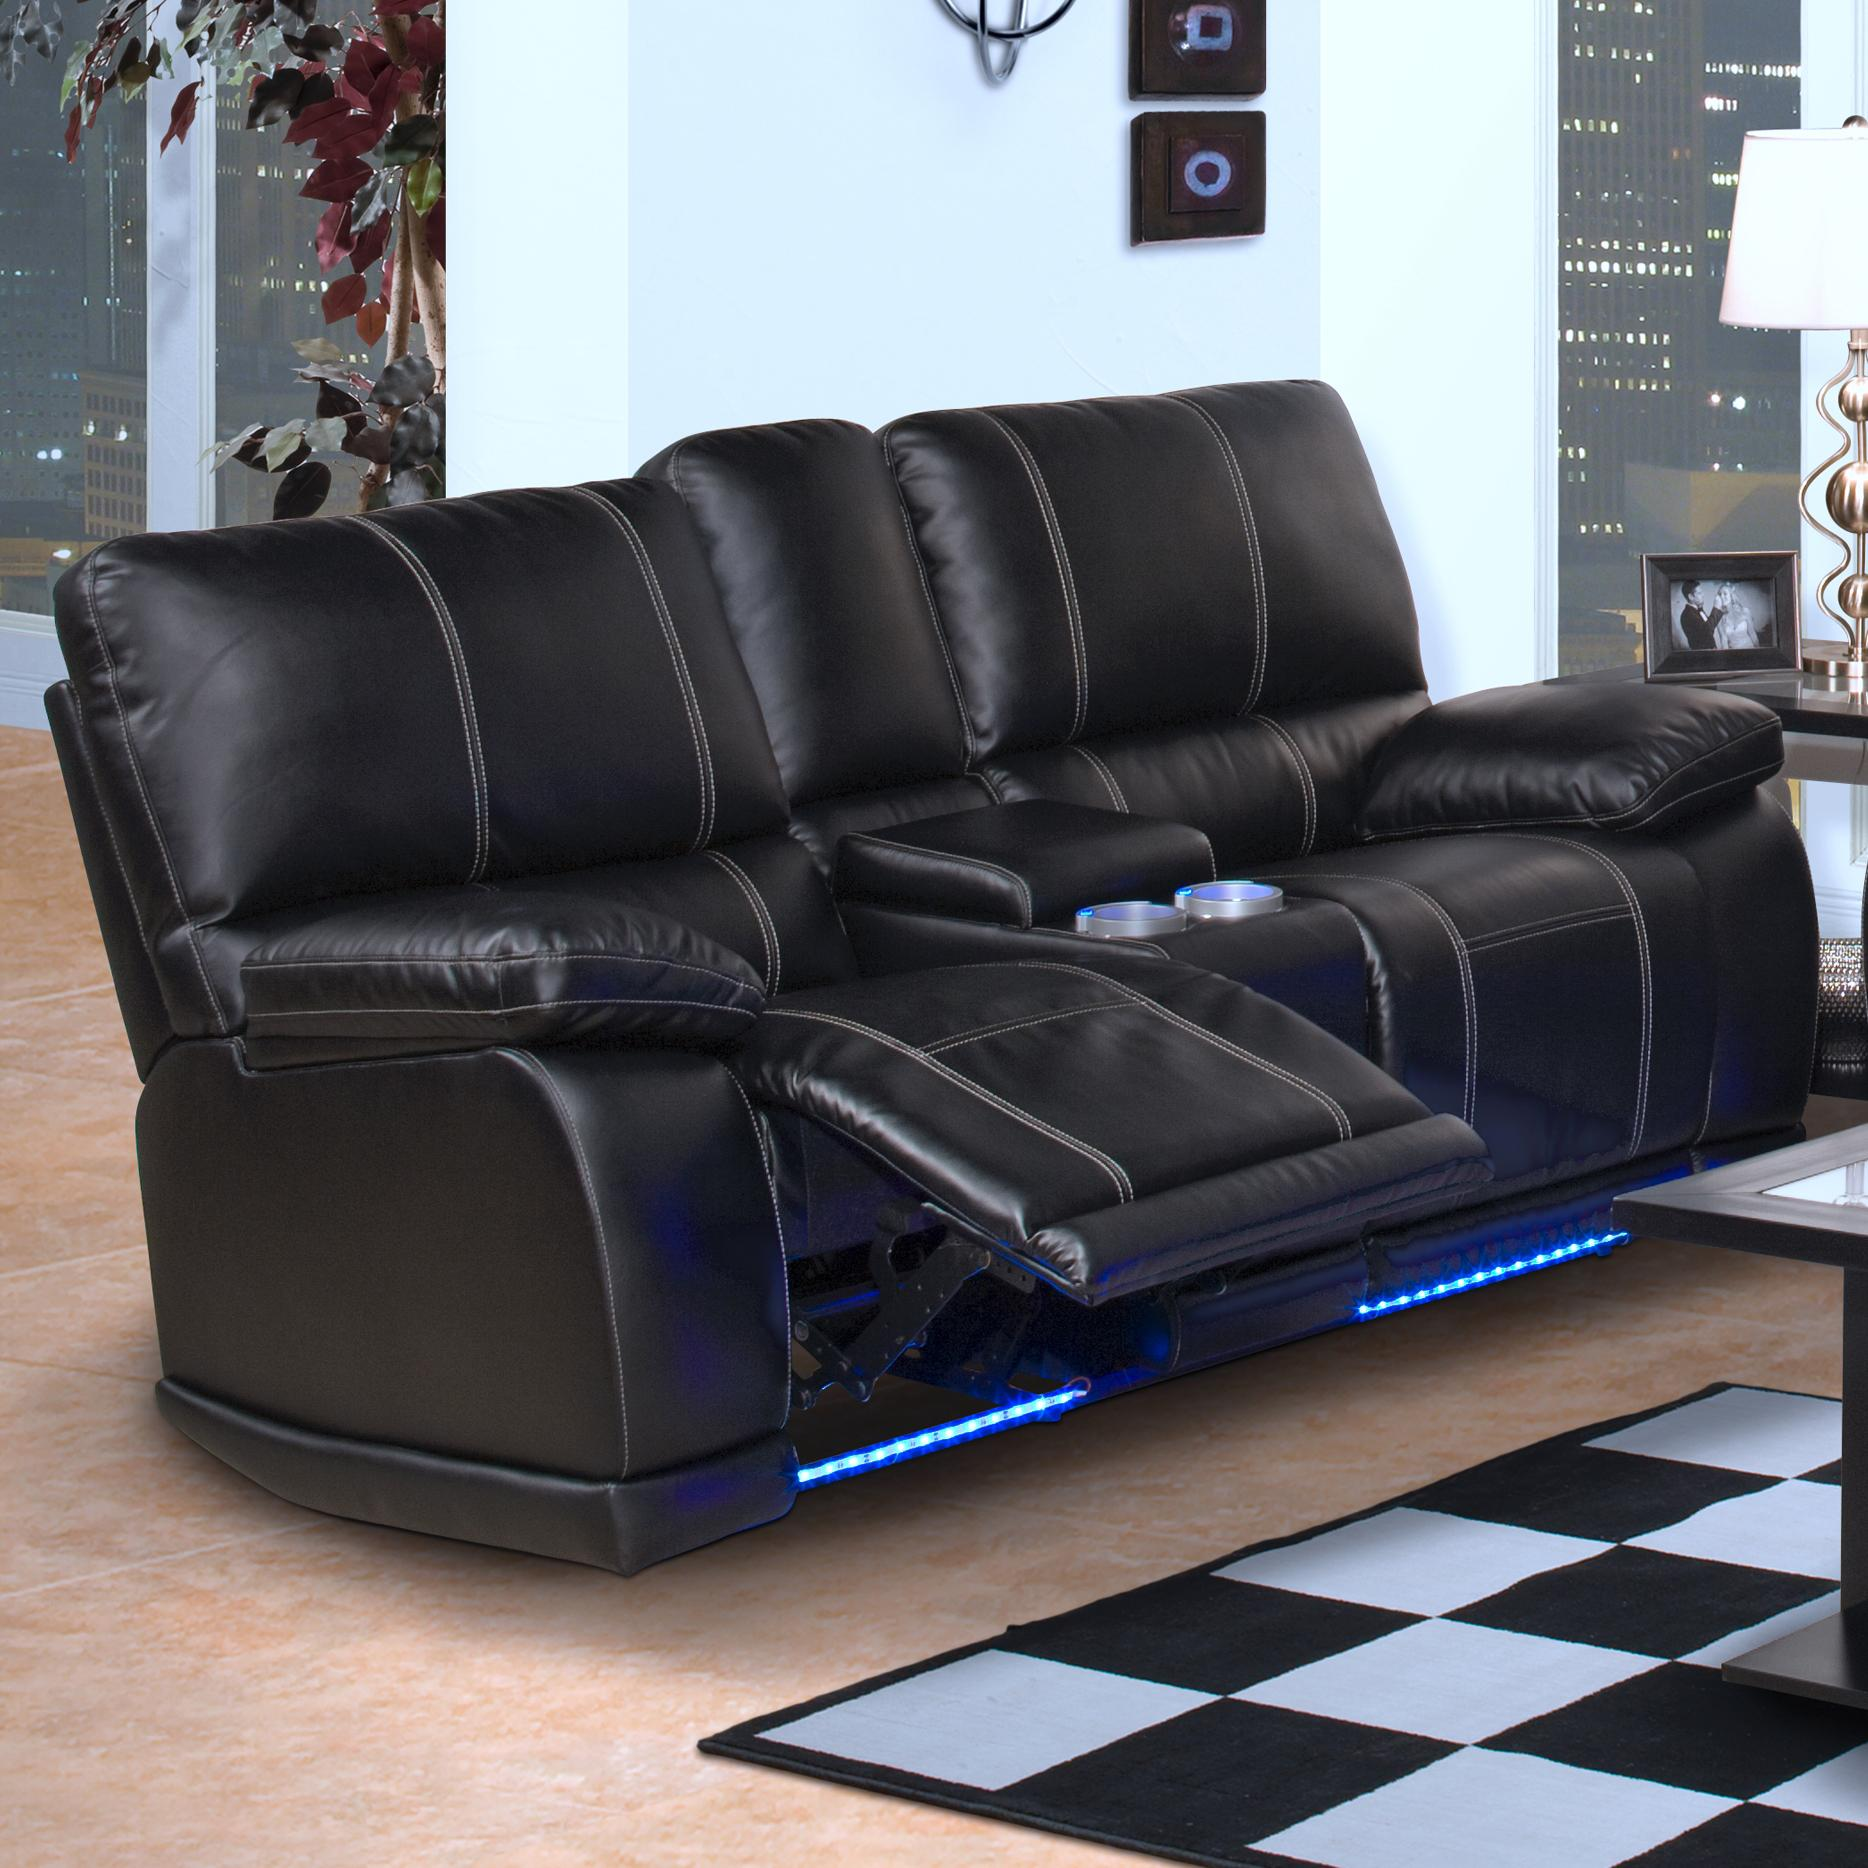 New classic electra contemporary dual recliner console loveseat with cup holders and storage Loveseat with cup holders